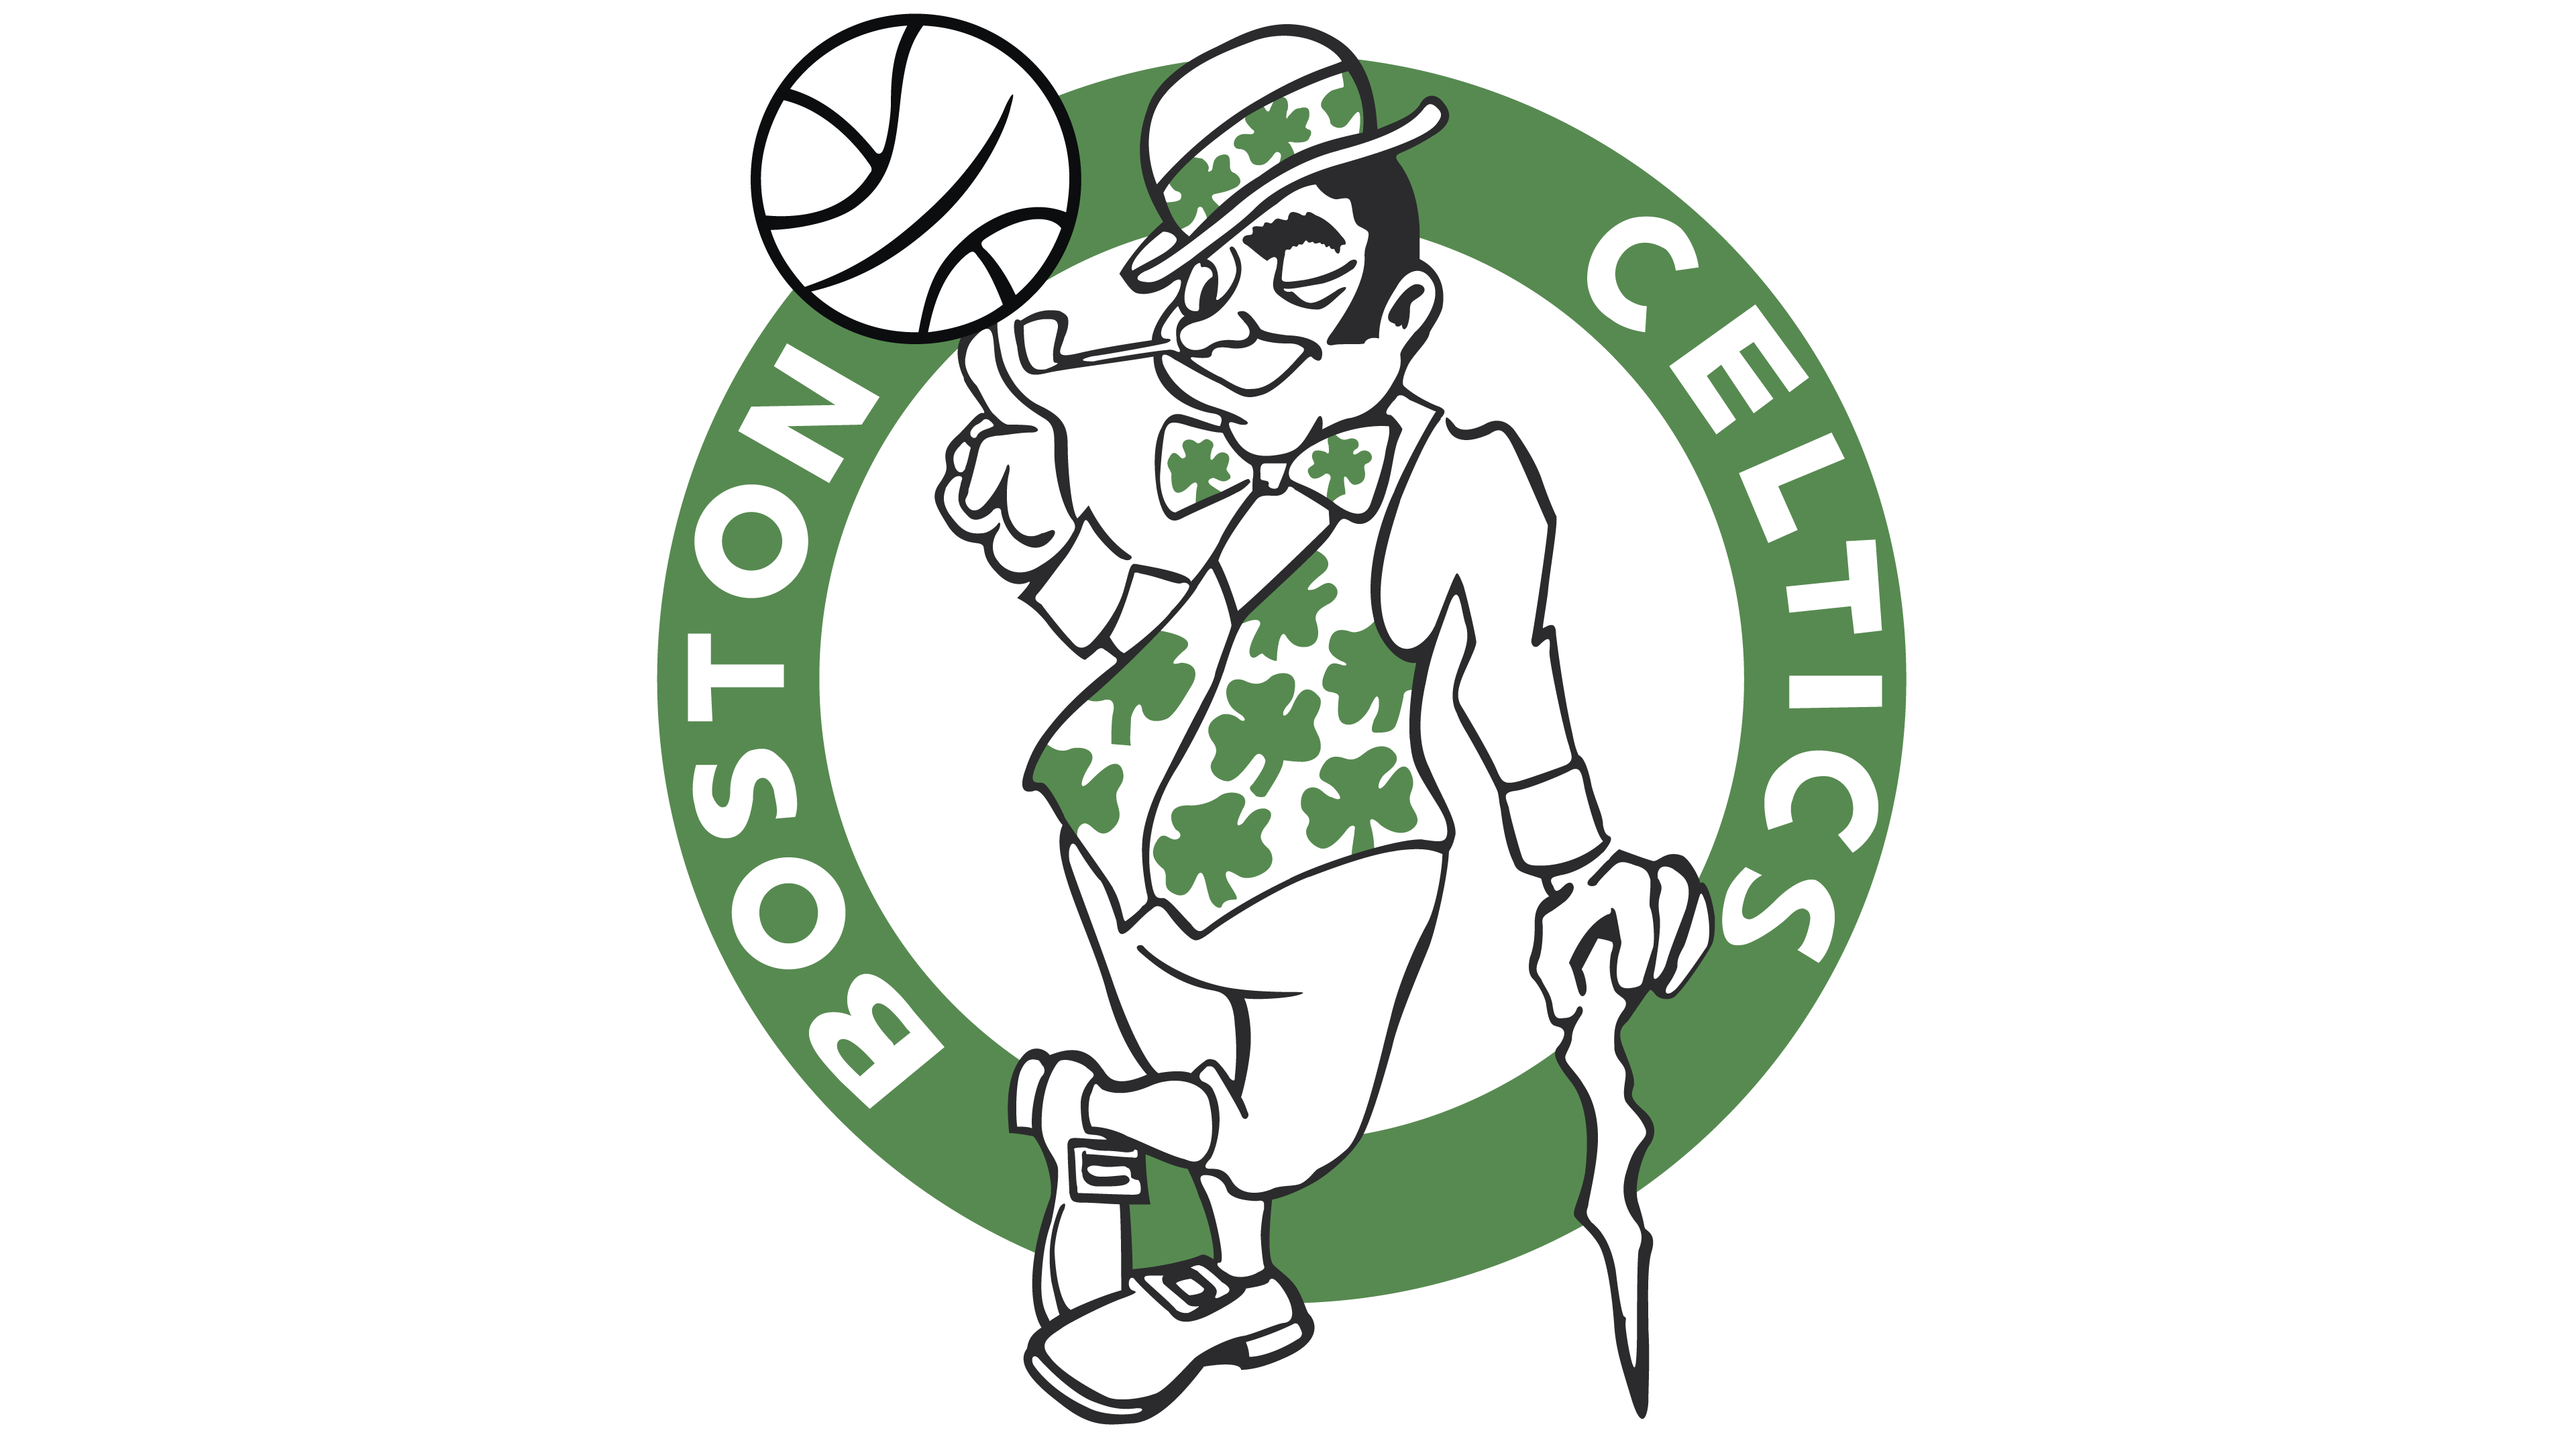 Boston celtics basketball clipart clip art royalty free stock Boston Celtics Logo - Interesting History of the Team Name and emblem clip art royalty free stock